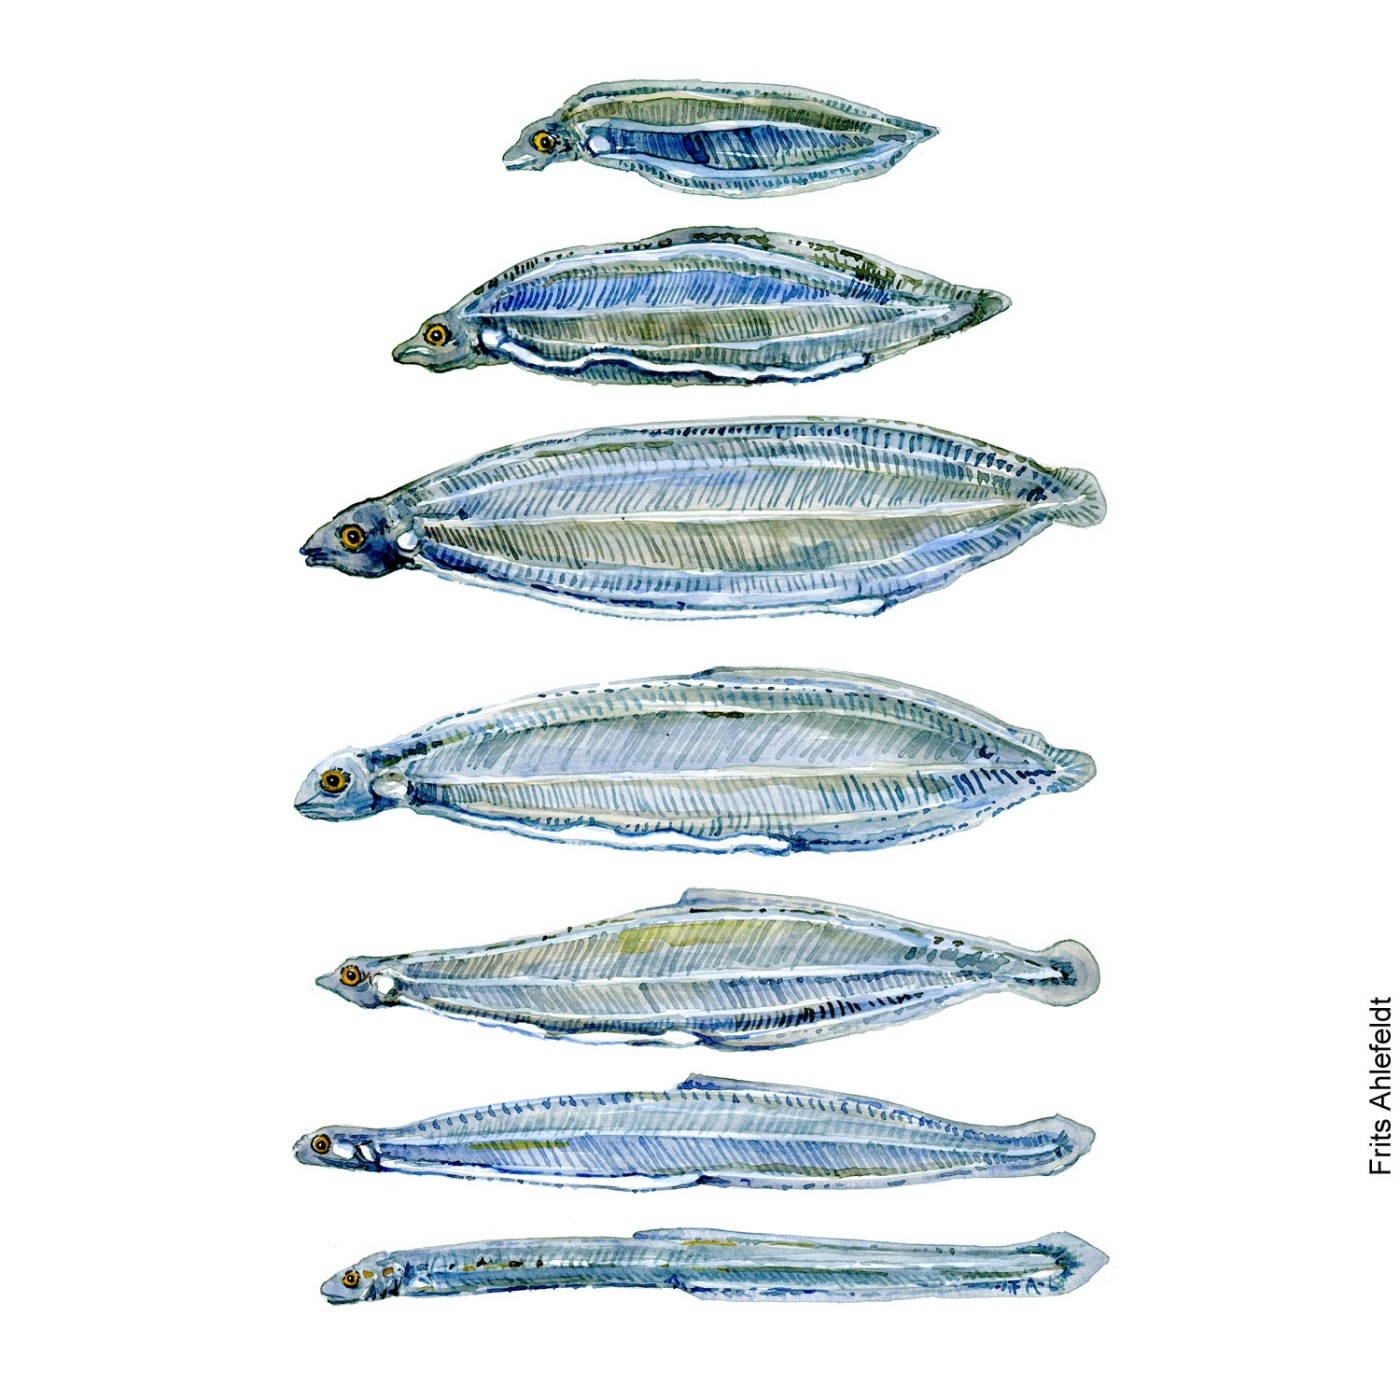 Watercolor painting of different stages of the eel larvae. Fish Illustration by Frits Ahlefeldt